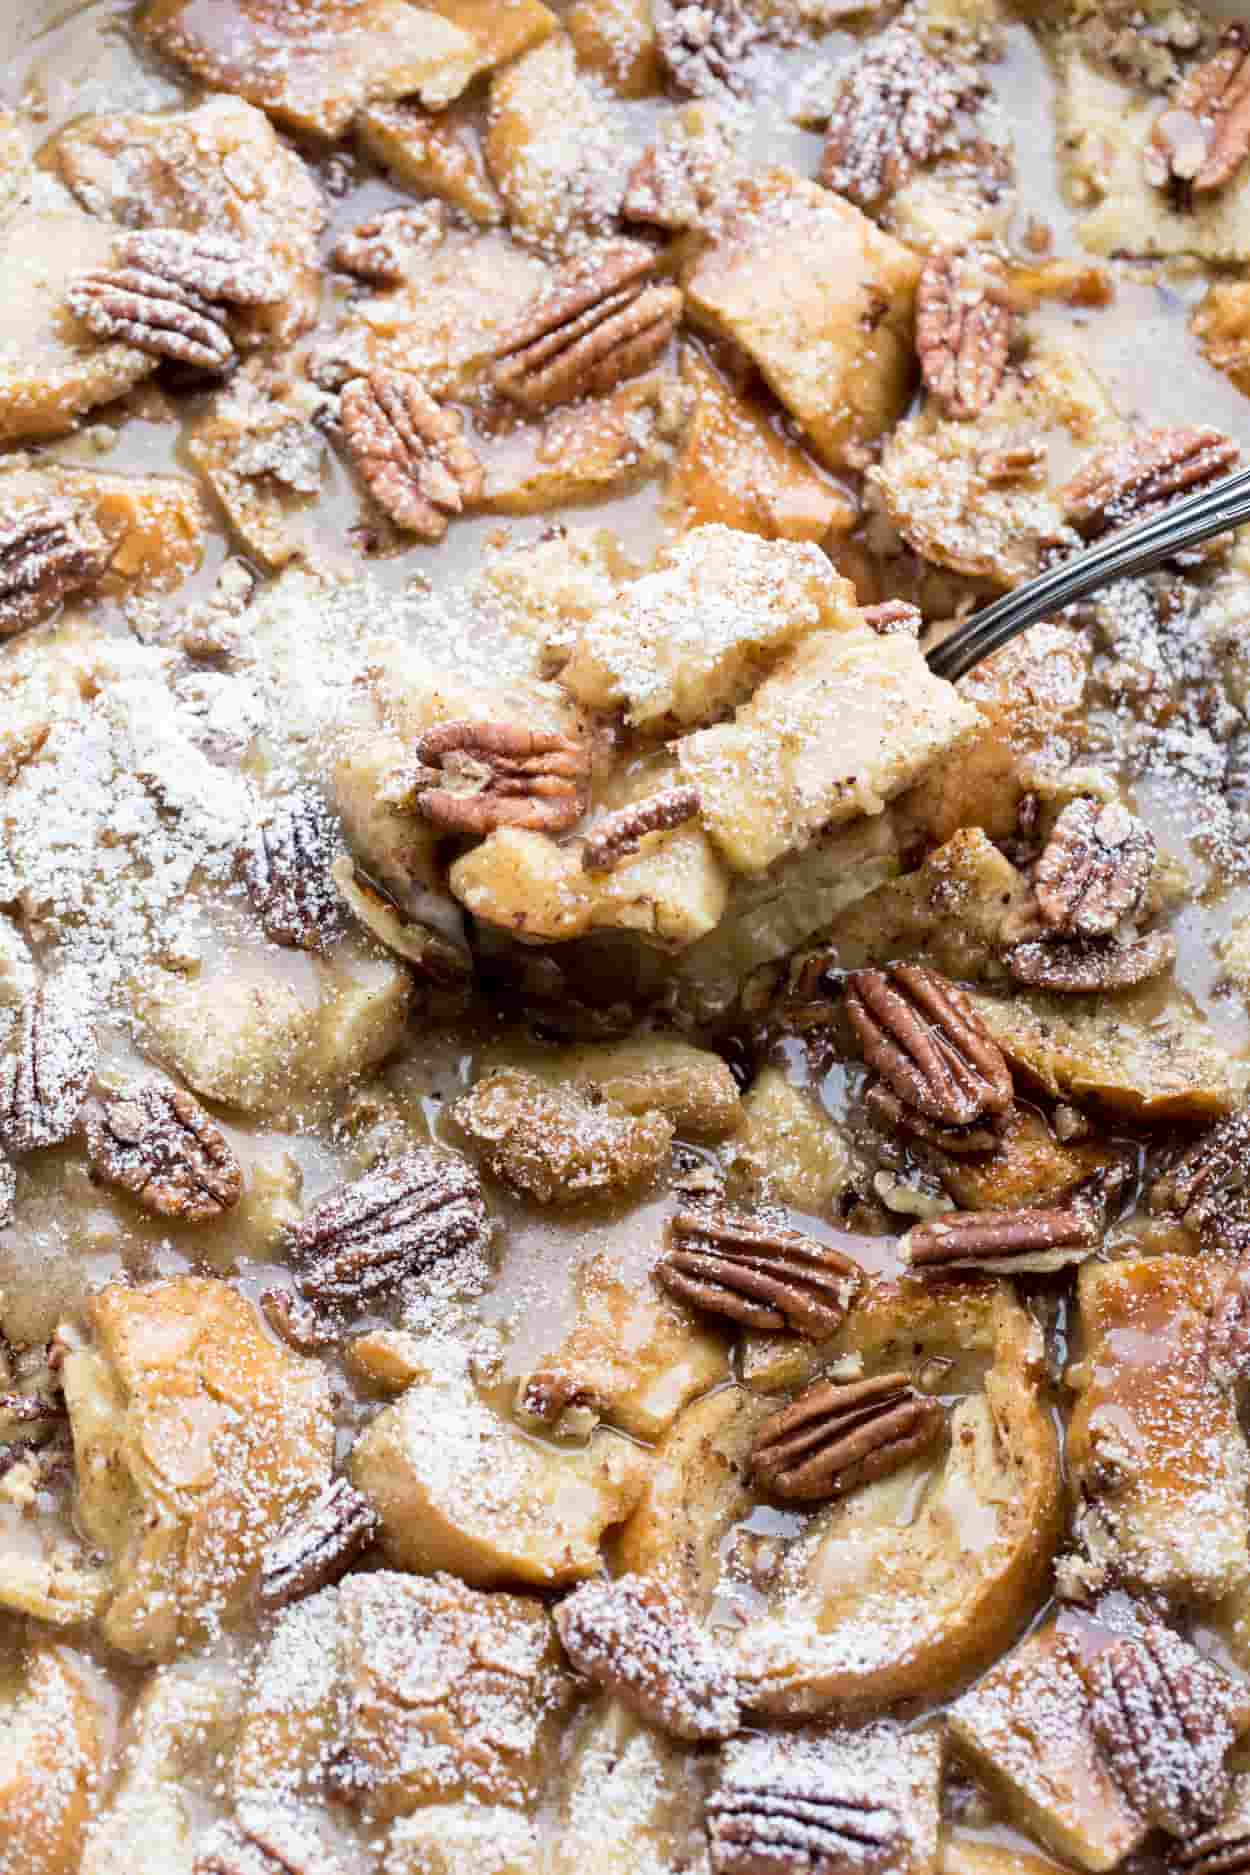 Upclose picture of this maple pecan french toast casserole with a spoon and topped with powdered sugar.